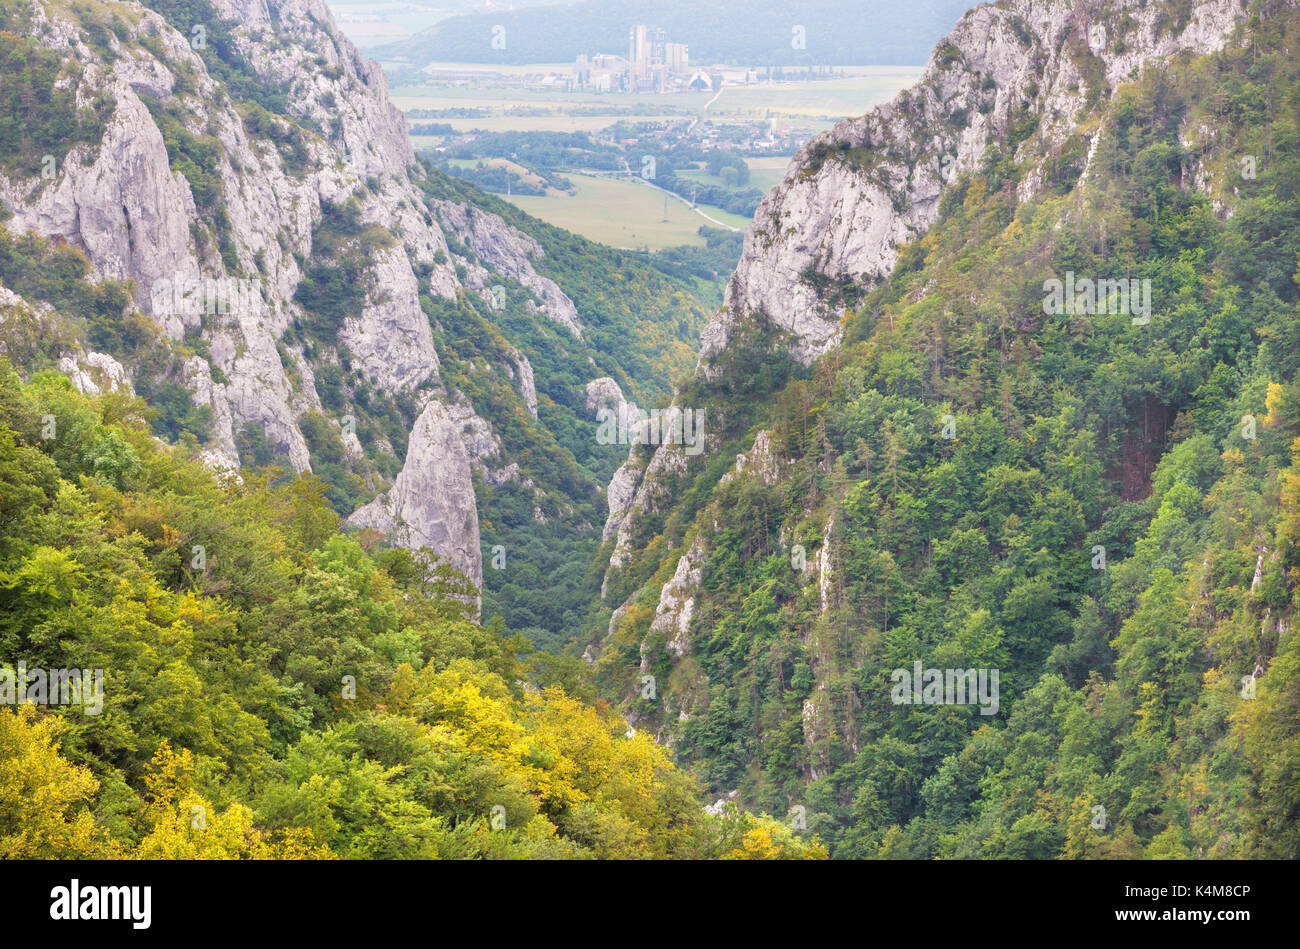 Roe valley stock photos roe valley stock images alamy slovakia zadielska valley in national park slovensky kras stock image ccuart Choice Image